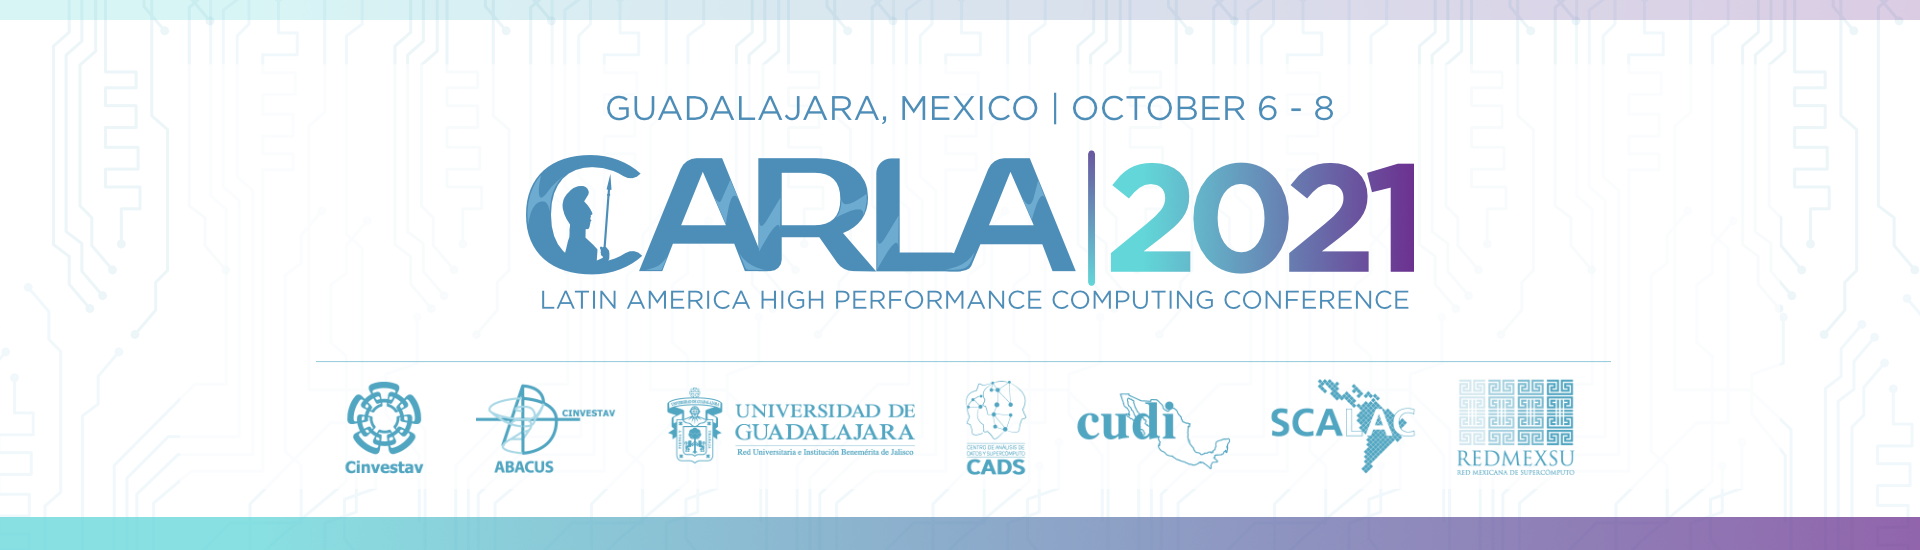 CARLA 2021 - GUADALAJARA. MEXICO. October 6-8